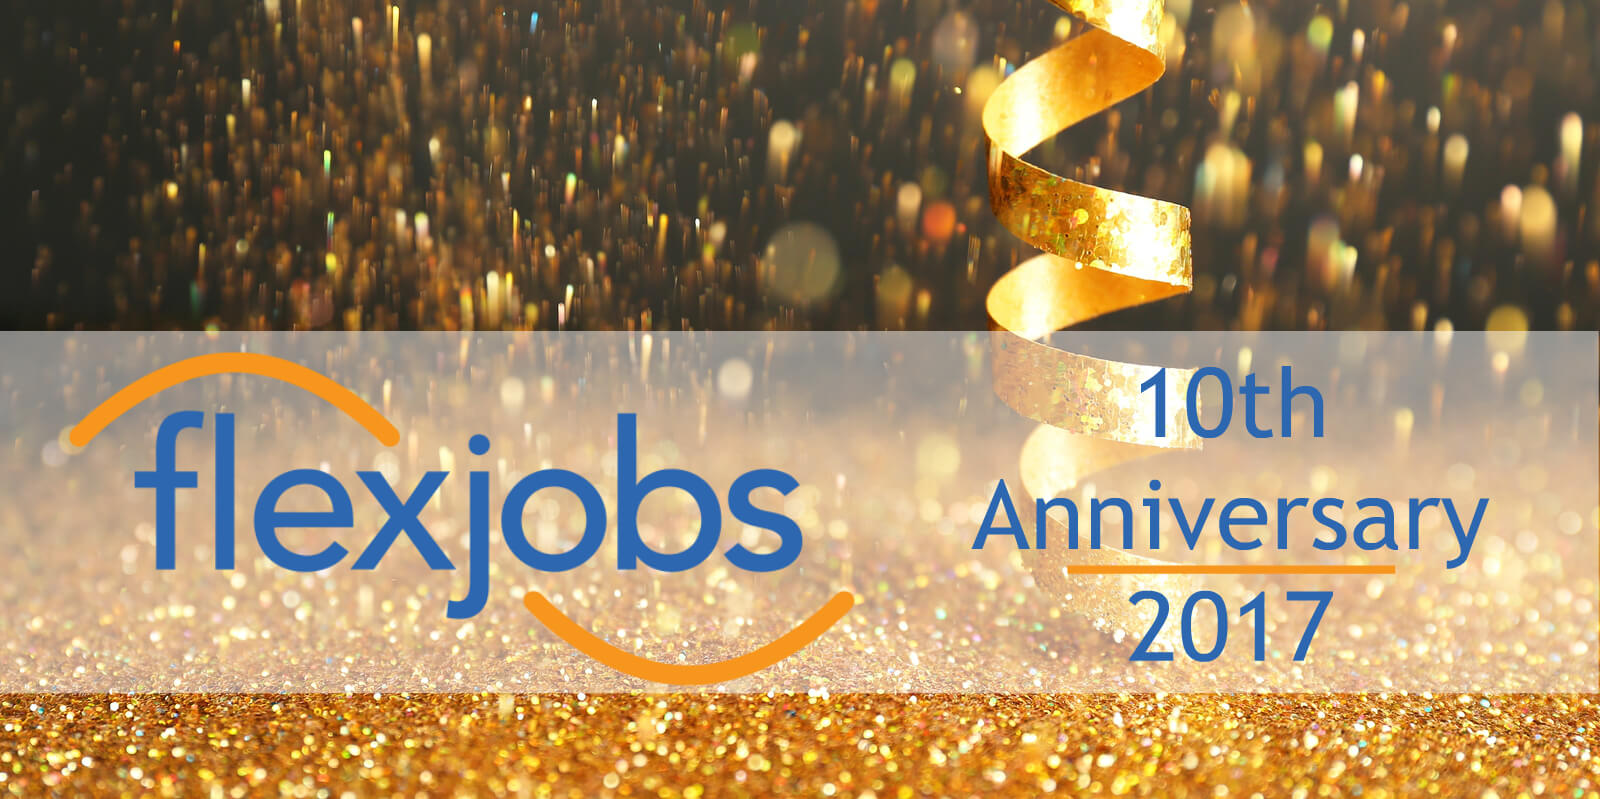 For FlexJobs 10th anniversary, we're celebrating a decade of workplace flexibility.